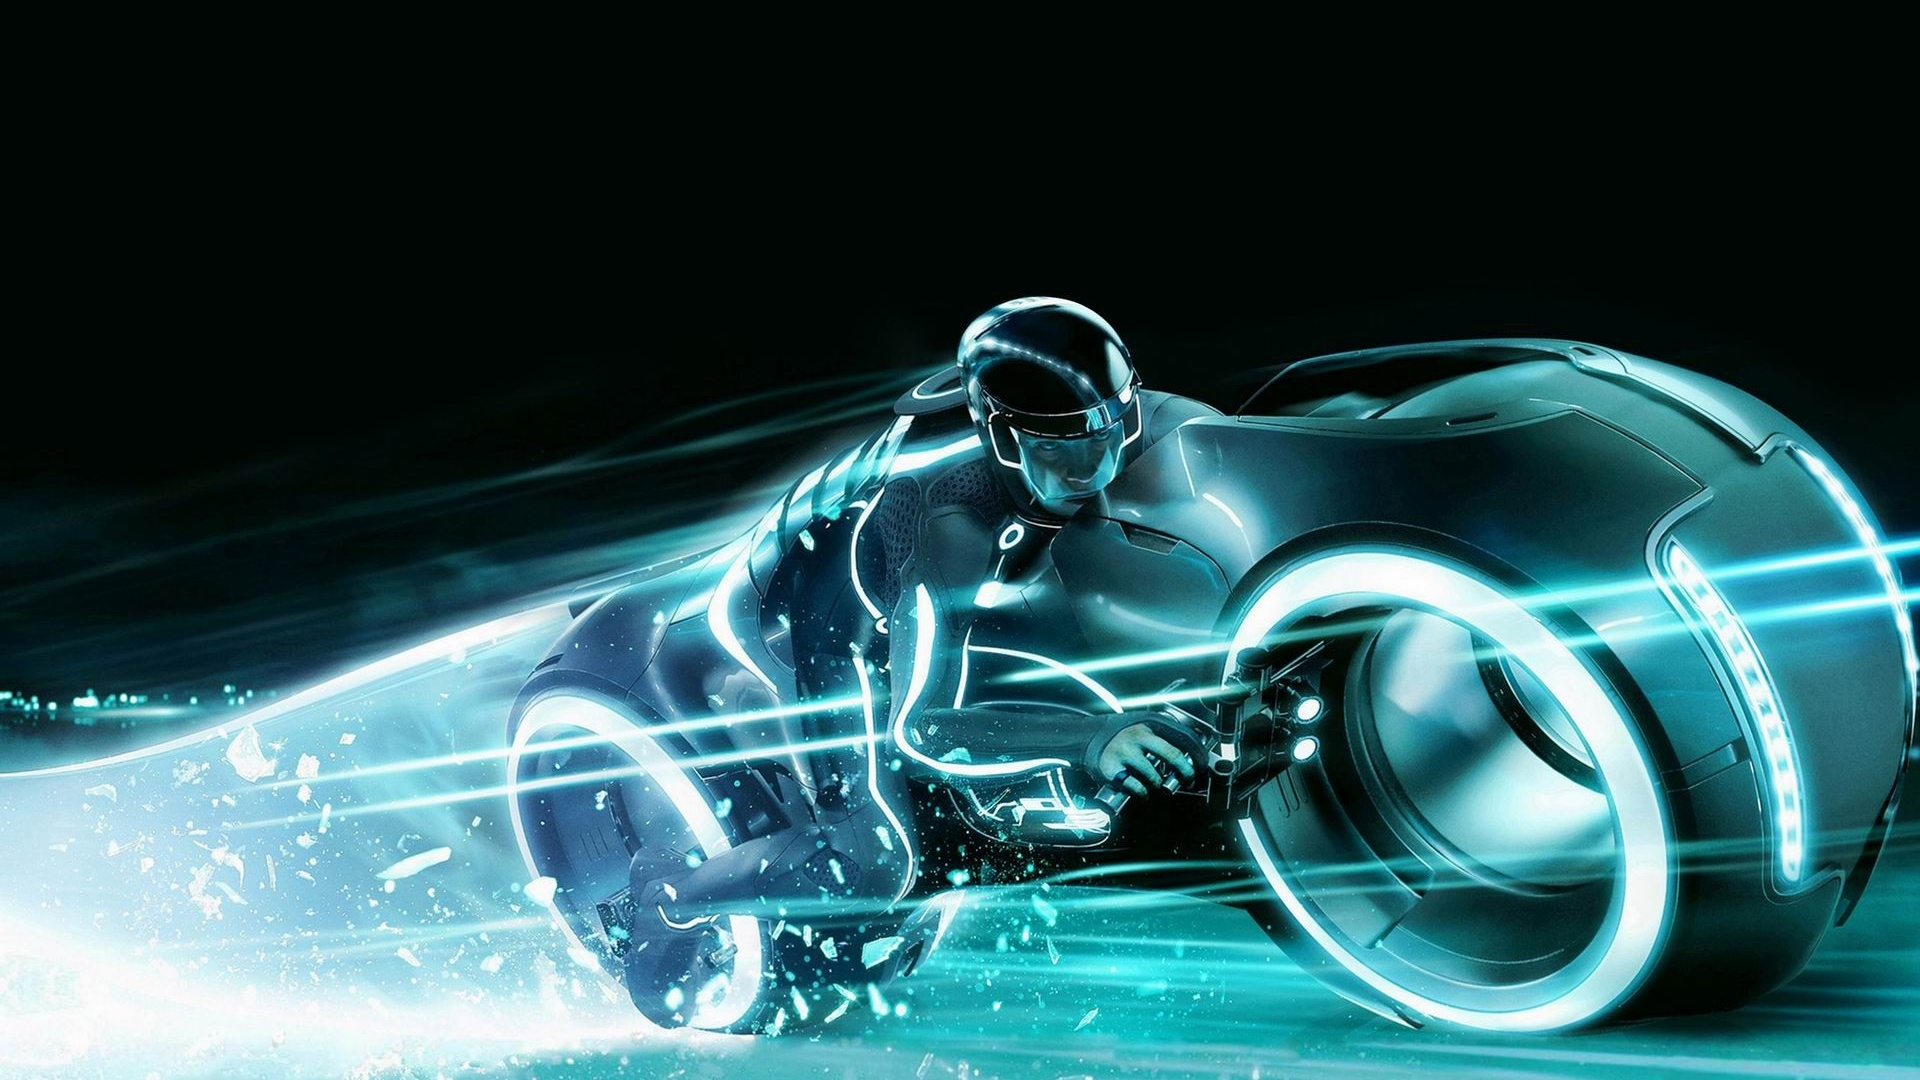 32448 download wallpaper Cinema, Actors, Men, Tron screensavers and pictures for free